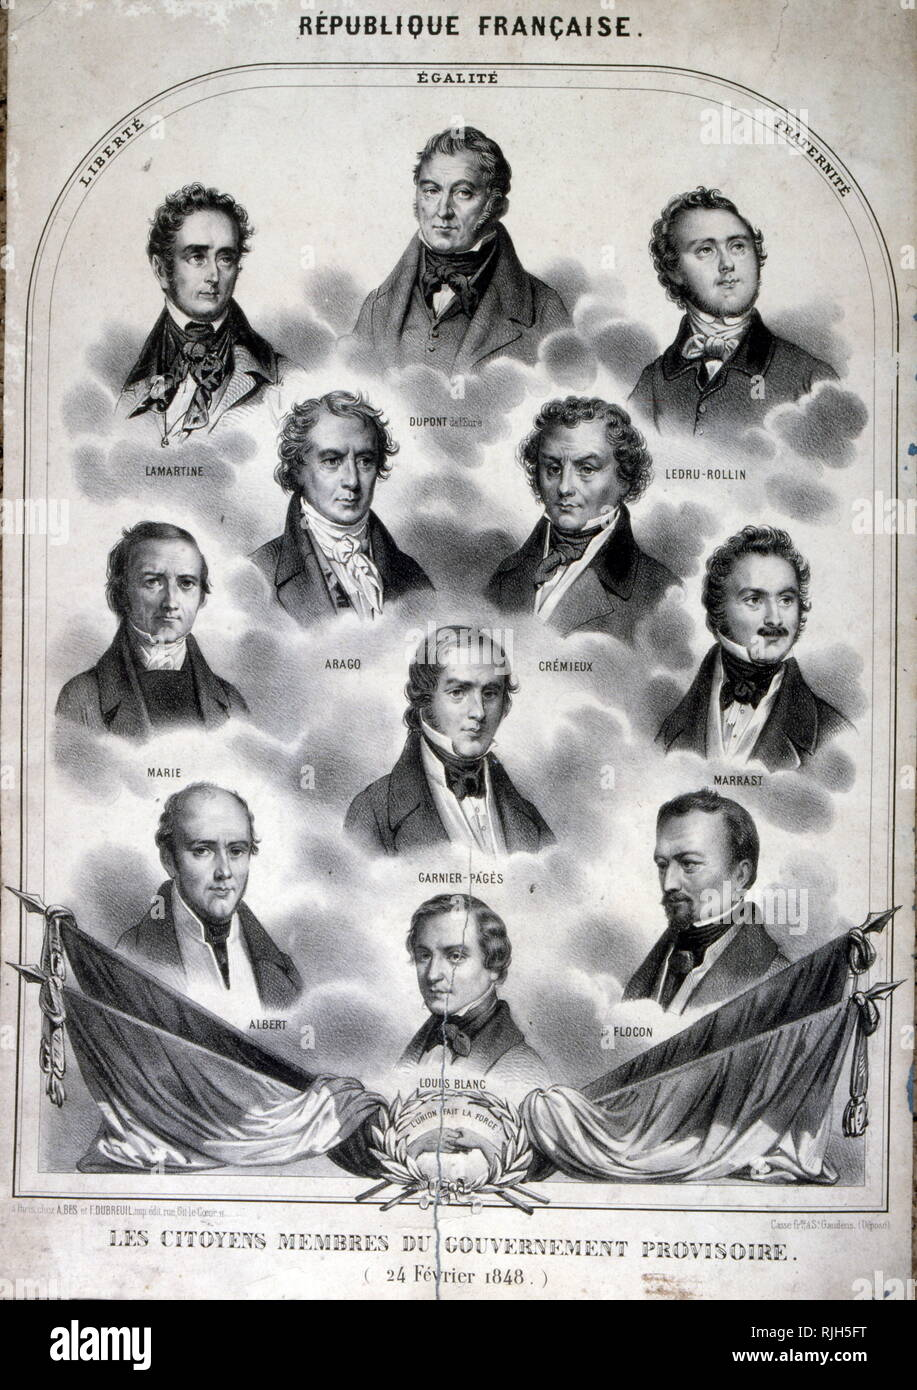 Members of the Provisional Government of France 1848 ( 24 February - May 9 , 1848); set up after the revolution of February 1848. Portraits inset include: Jacques Charles Dupont, Alphonse de Lamartine, Adolphe Cremieux, Francois Arago, Alexandre Ledru-Rollin, Louis-Antoine Garnier-Pages, Pierre Marie, Armand Marrast, Louis Blanc, Ferdinand Flocon, Alexandre Martin, and Alexandre-Albert Martin, (nicknamed Albert worker). - Stock Image